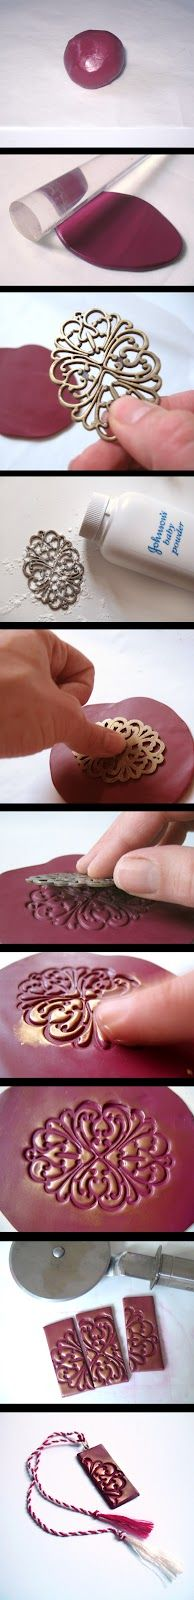 Easy way to make a polymer clay pendant